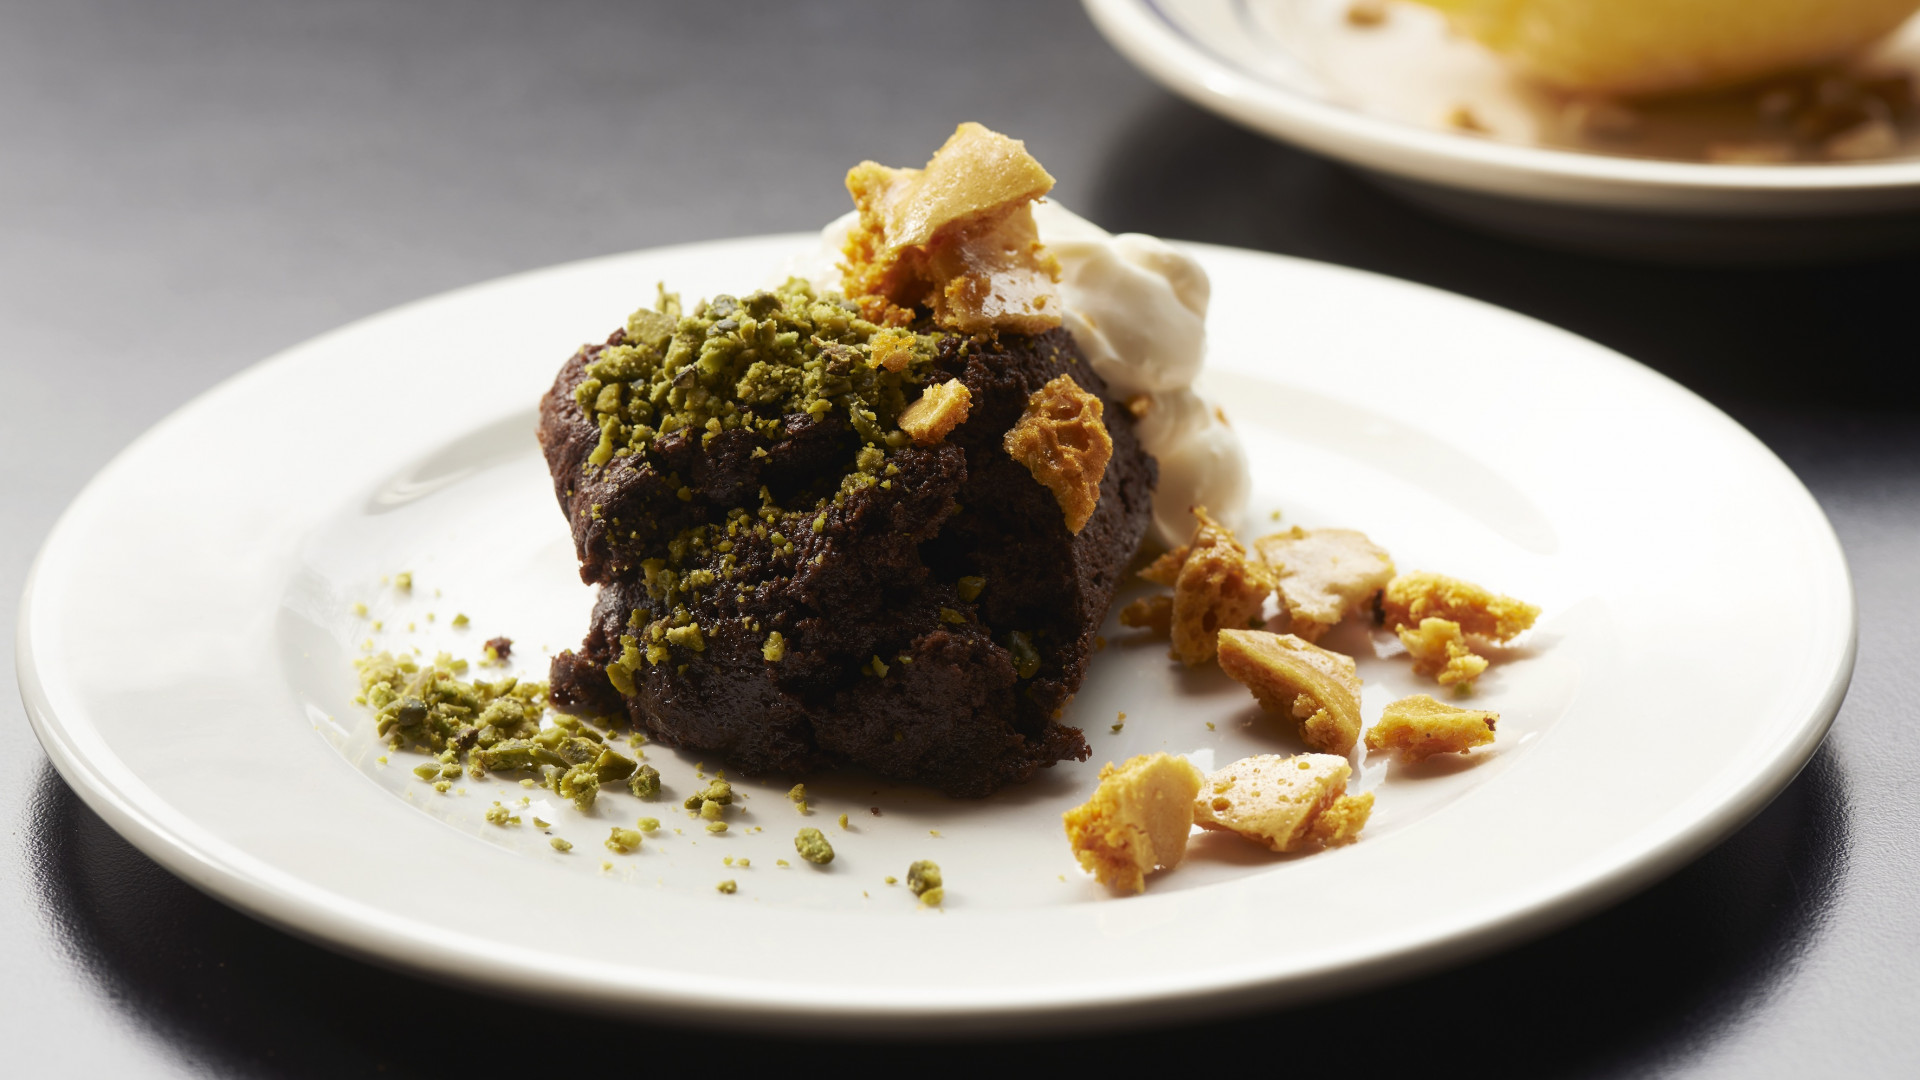 Chocolate cake with honeycomb and crushed pistachios from Rotorino, Dalston